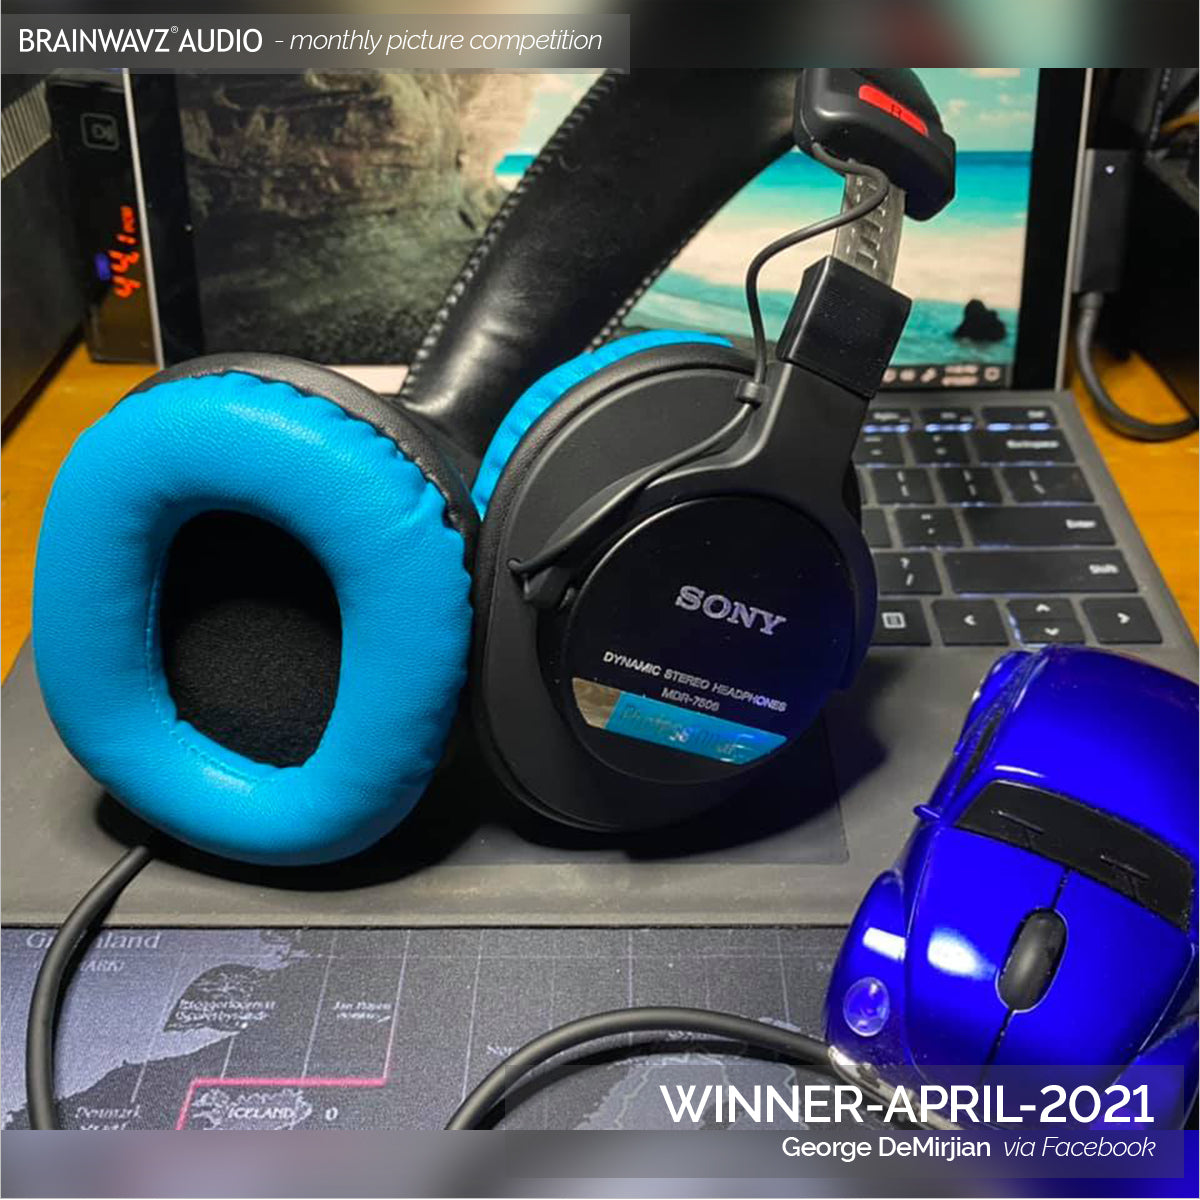 Winning photo - Brainwavz monthly photo comp - Sony MDR7506 with Brainwavz turquoise earpads